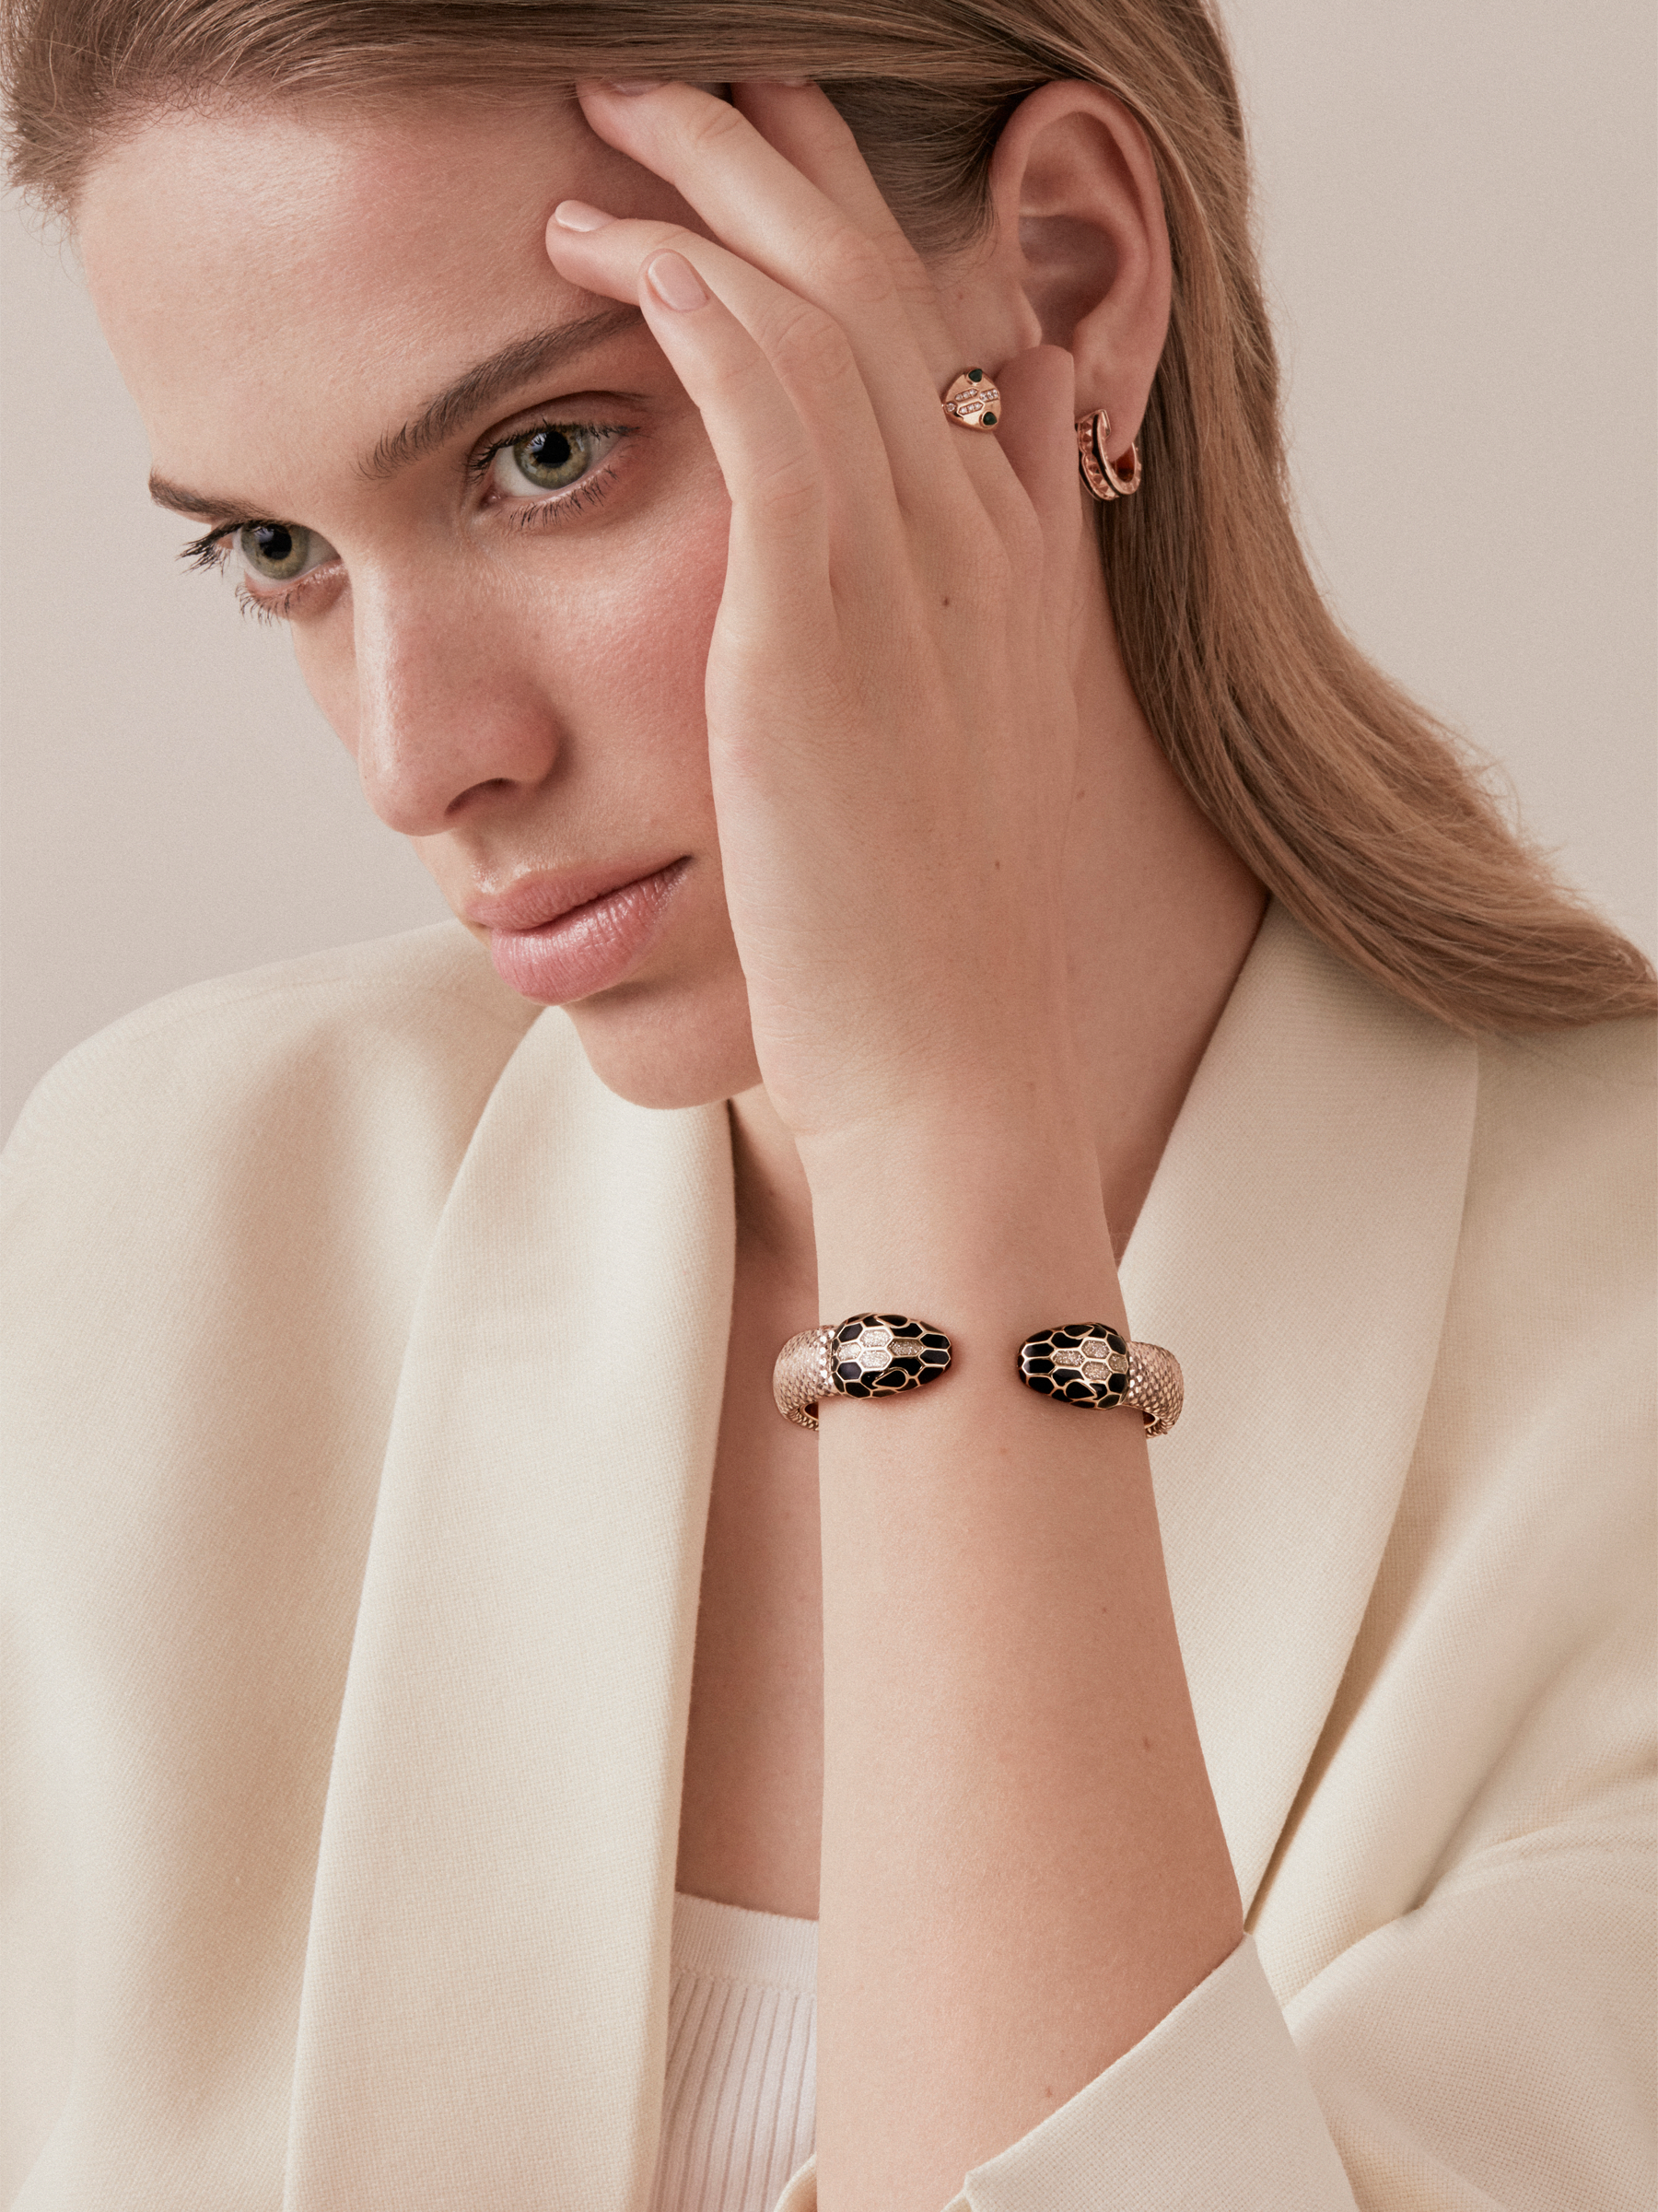 Serpenti Forever bangle bracelet in milky opal metallic karung skin, with brass light gold plated hardware. Iconic contraire snakehead décor in black and glitter milky opal enamel, with black enamel eyes. 288377 image 2